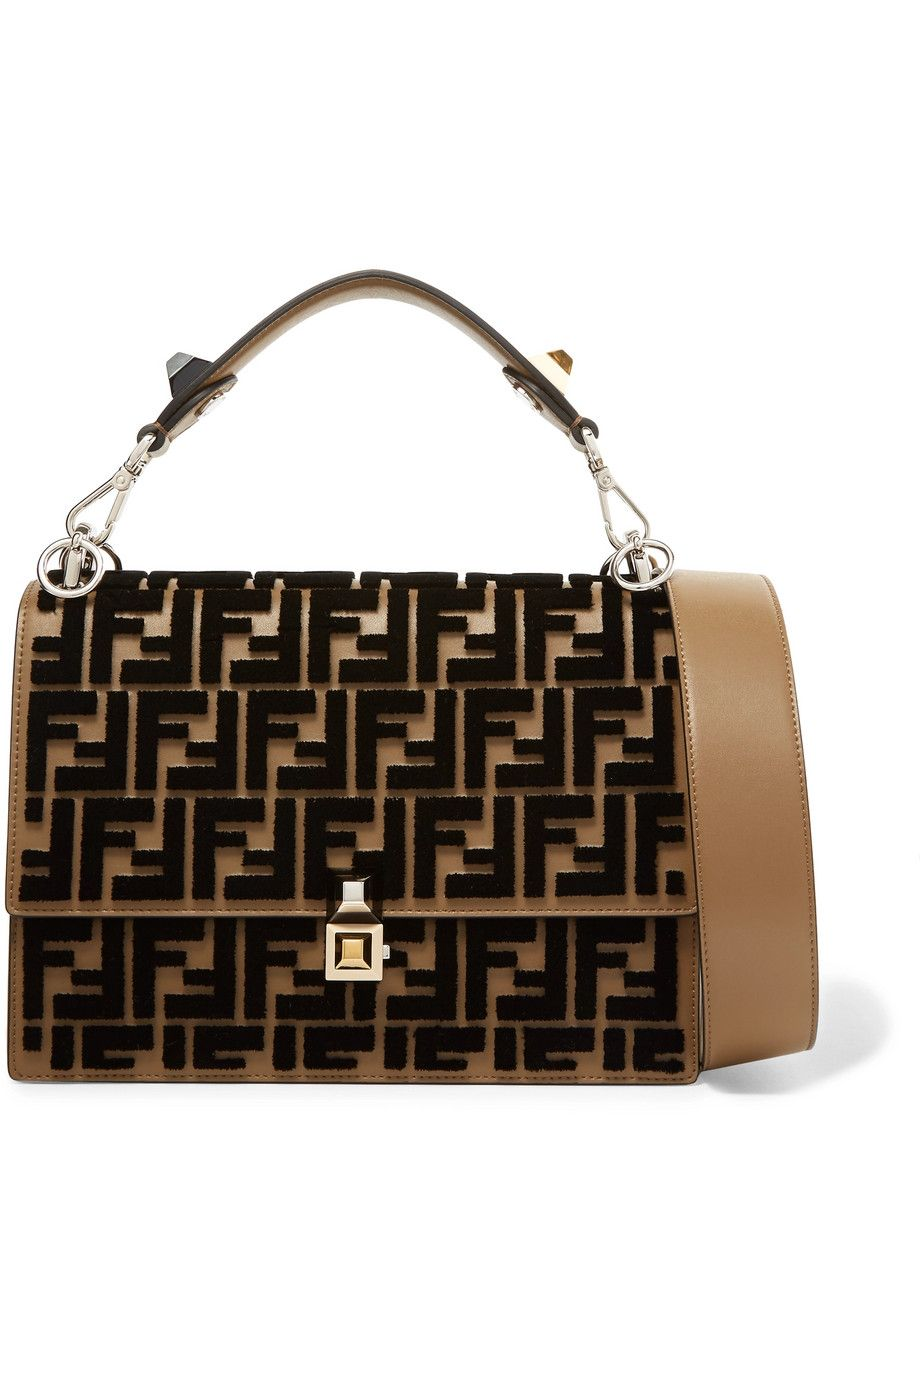 68c67e310f Fendi s  Kan I  bag is made from smooth tan leather flocked with Karl  Lagerfeld s signature double  F  logo in black – the motif first appeared  in the  60s.